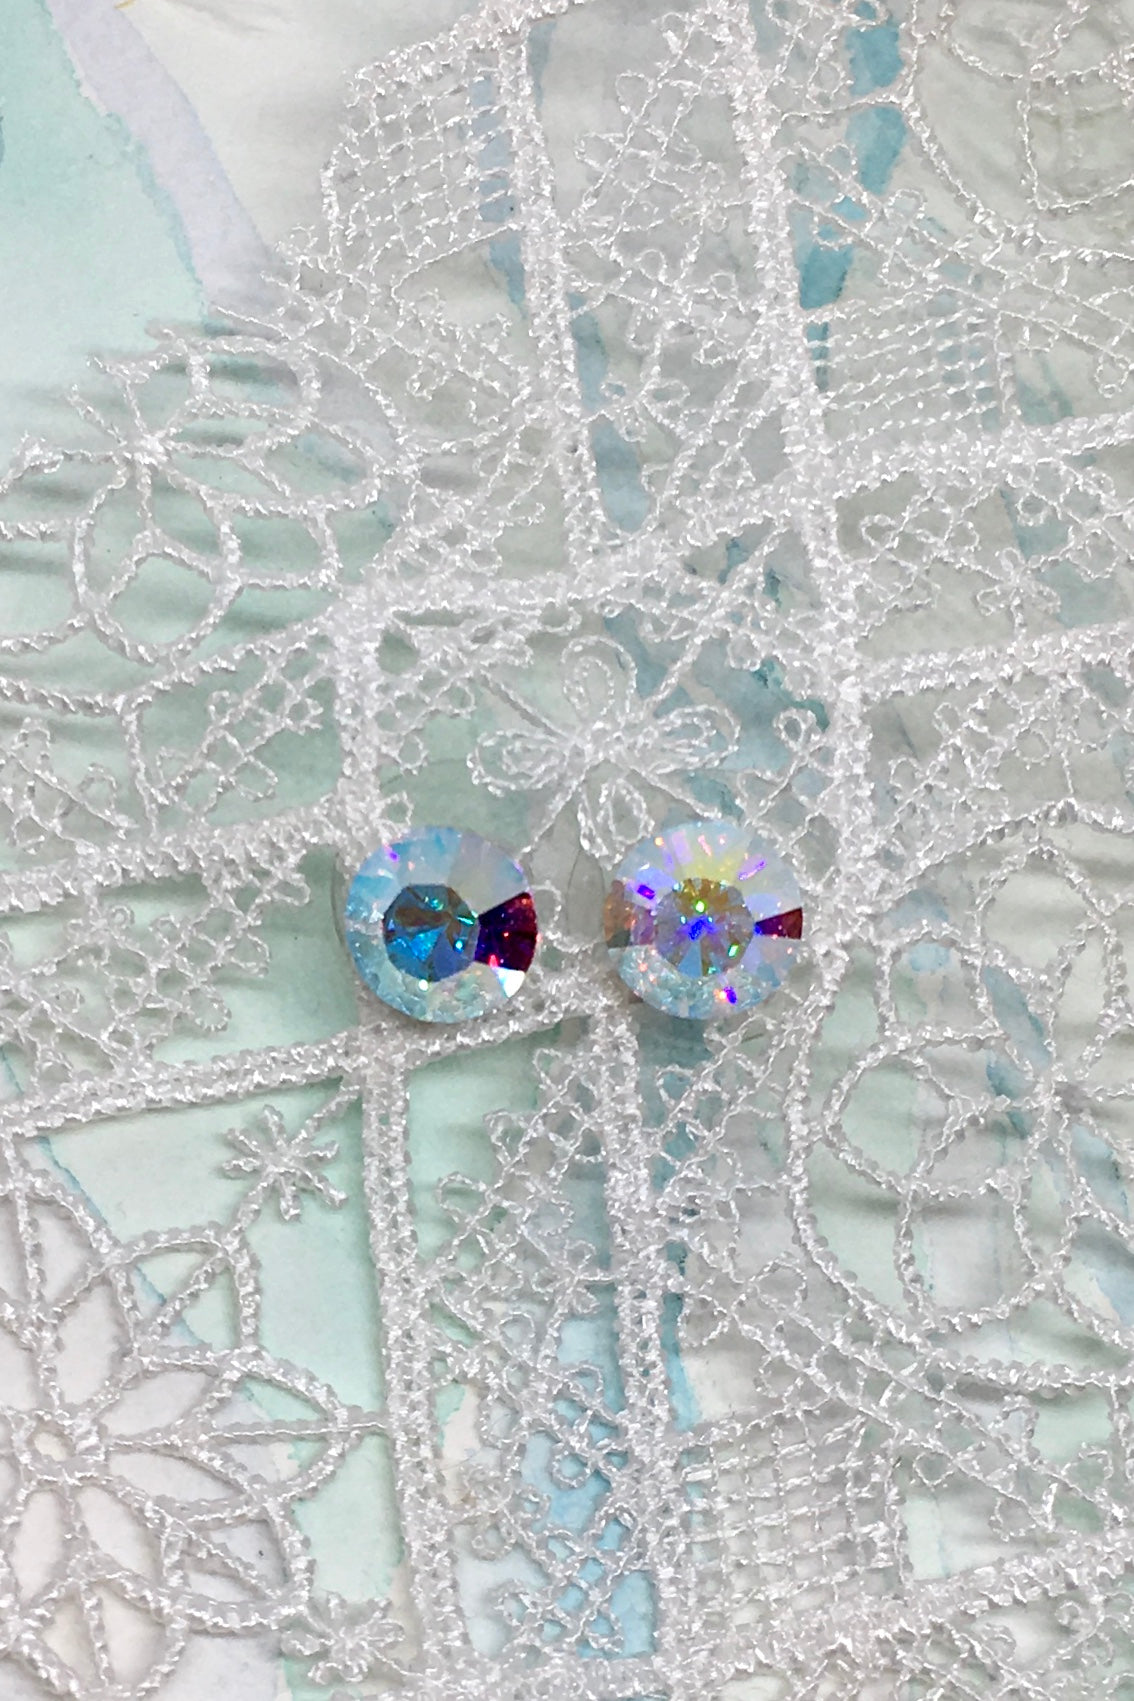 Earrings Crystal Stud, Swarovski Crystal sparkly stud earrings for wedding and bridesmaids in diamante, blue and pink